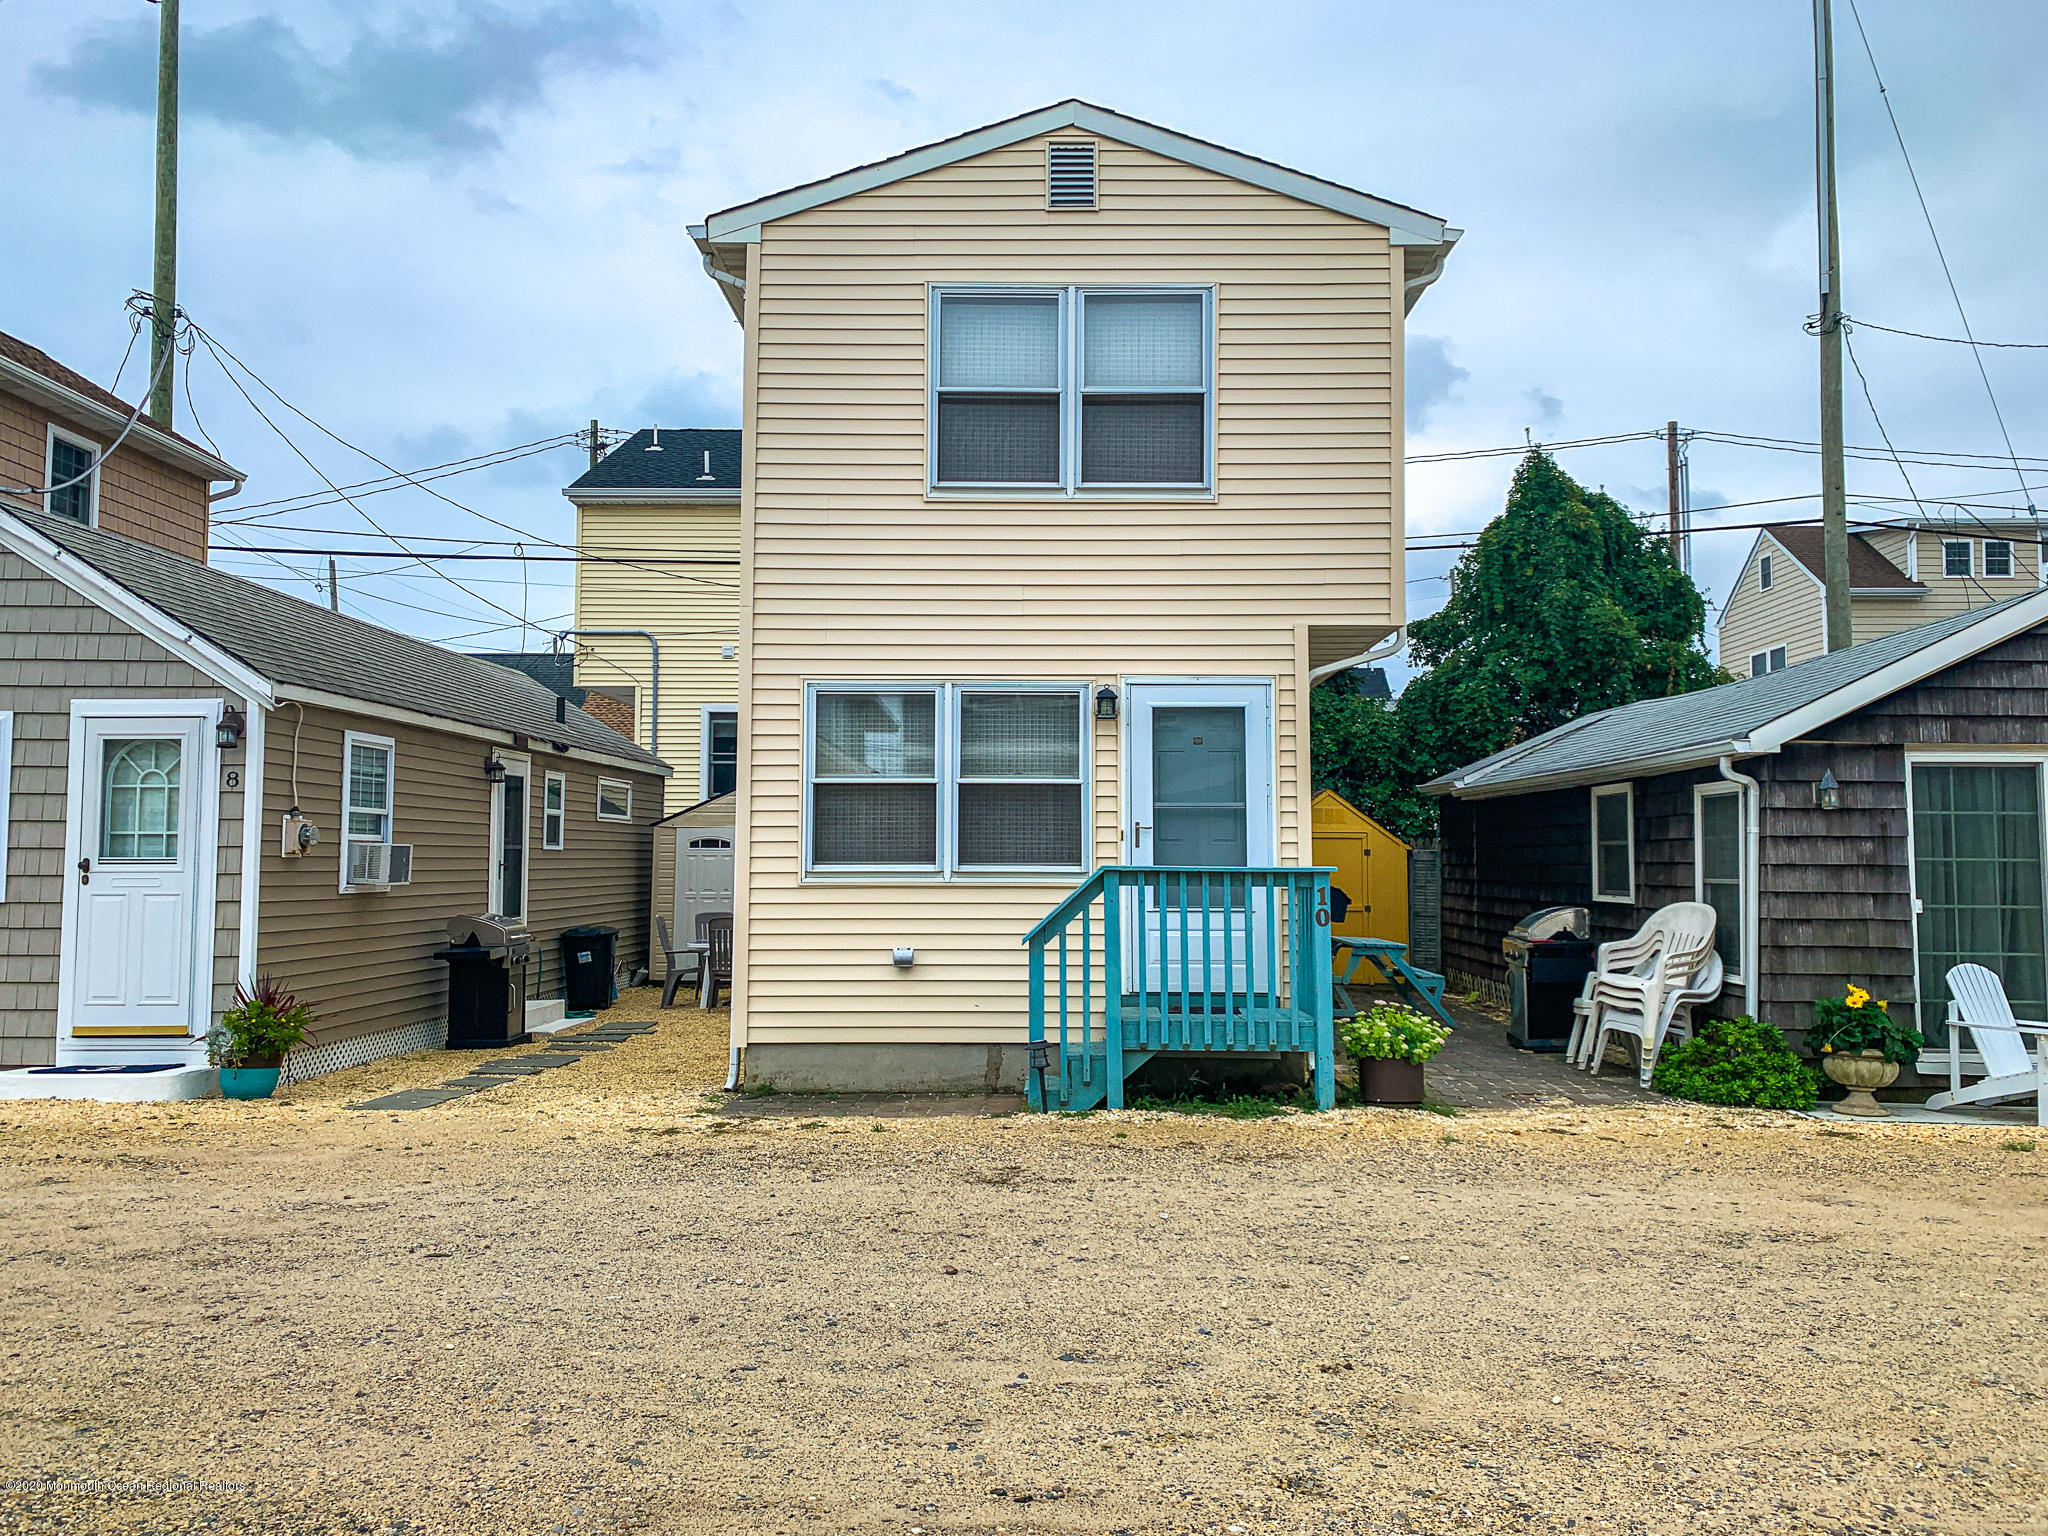 Photo of 10 W Brighton Avenue, Lavallette, NJ 08735